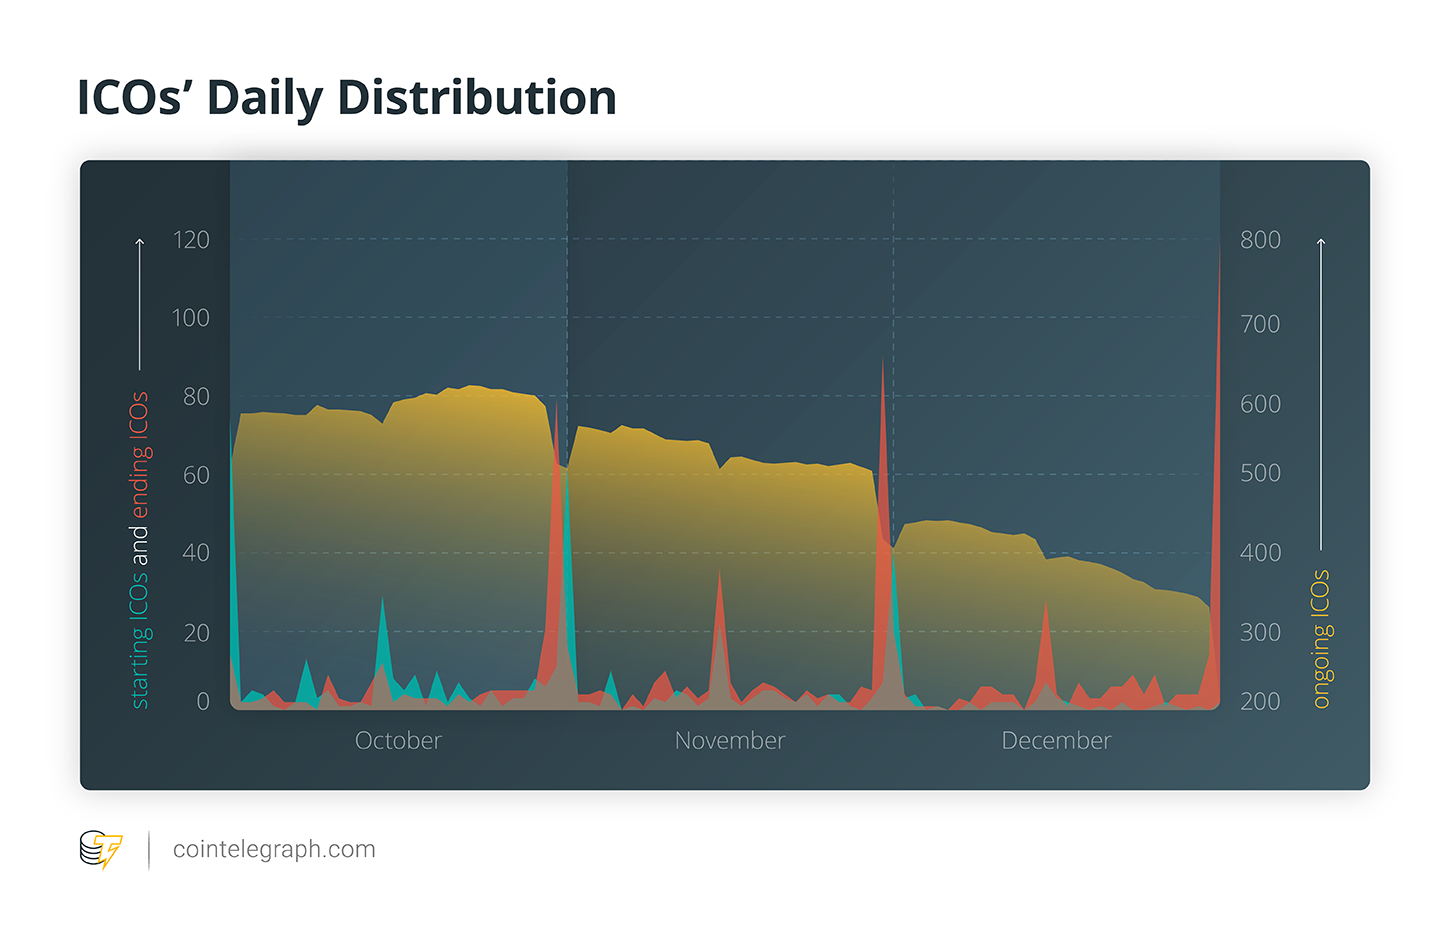 ICOs' Daily Distribution